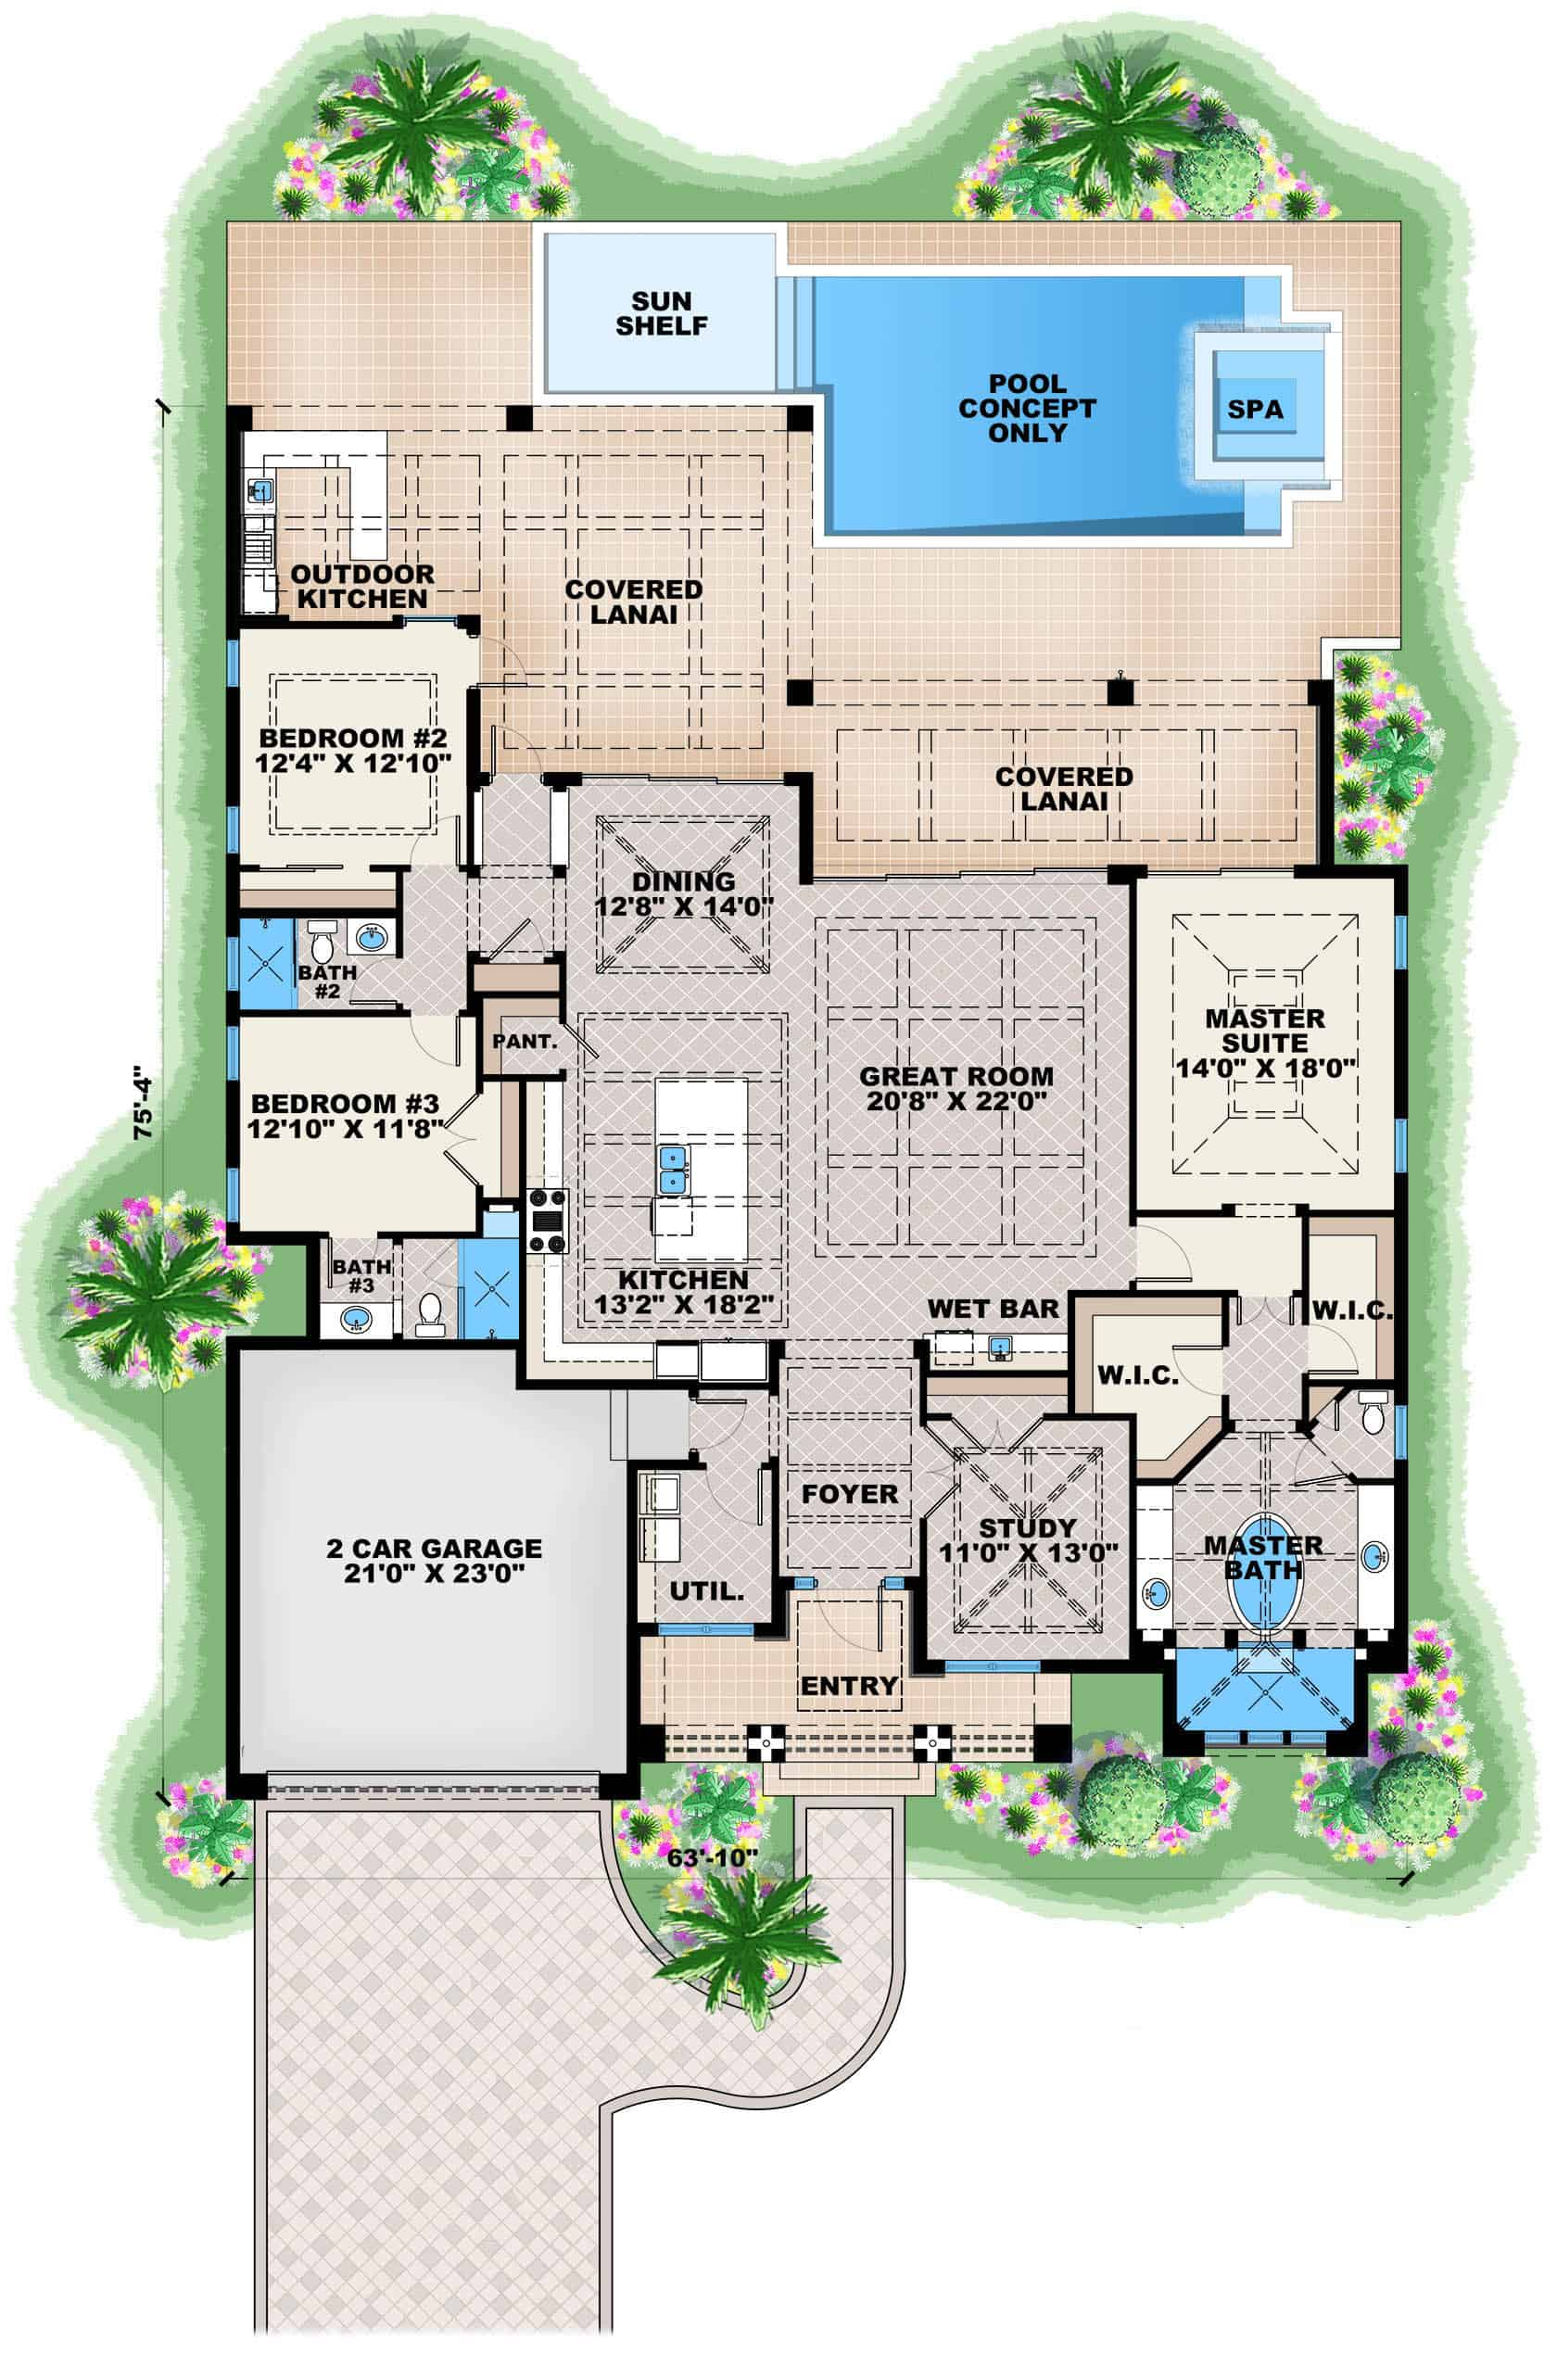 Superb floor plan layout with plenty of outdoor living space perfect for entertaining.